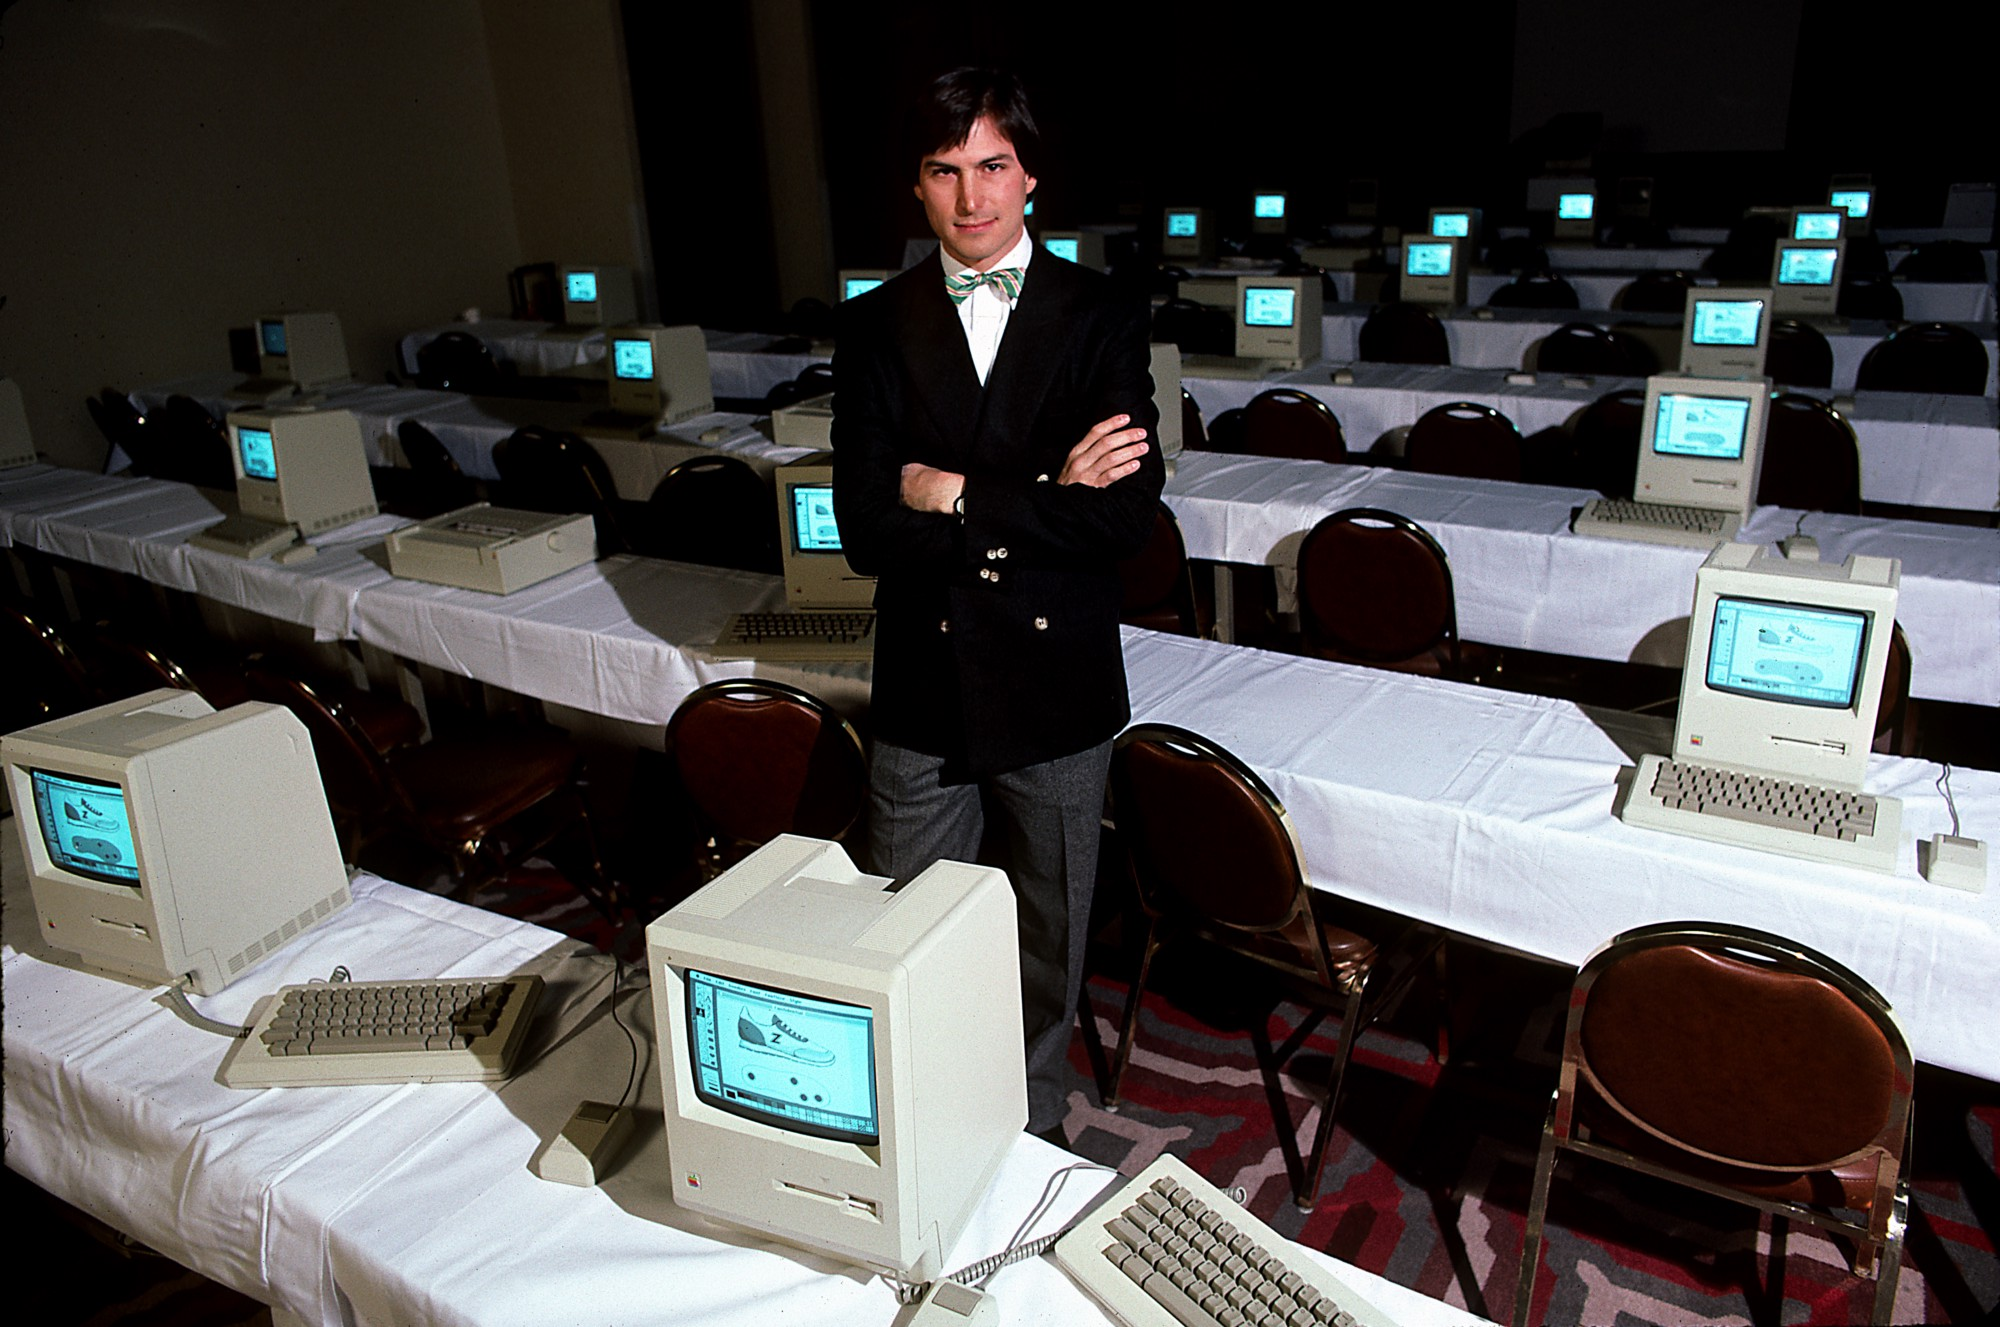 When the Mac was introduced 33 years ago, people thought graphical user interfaces were a real problem